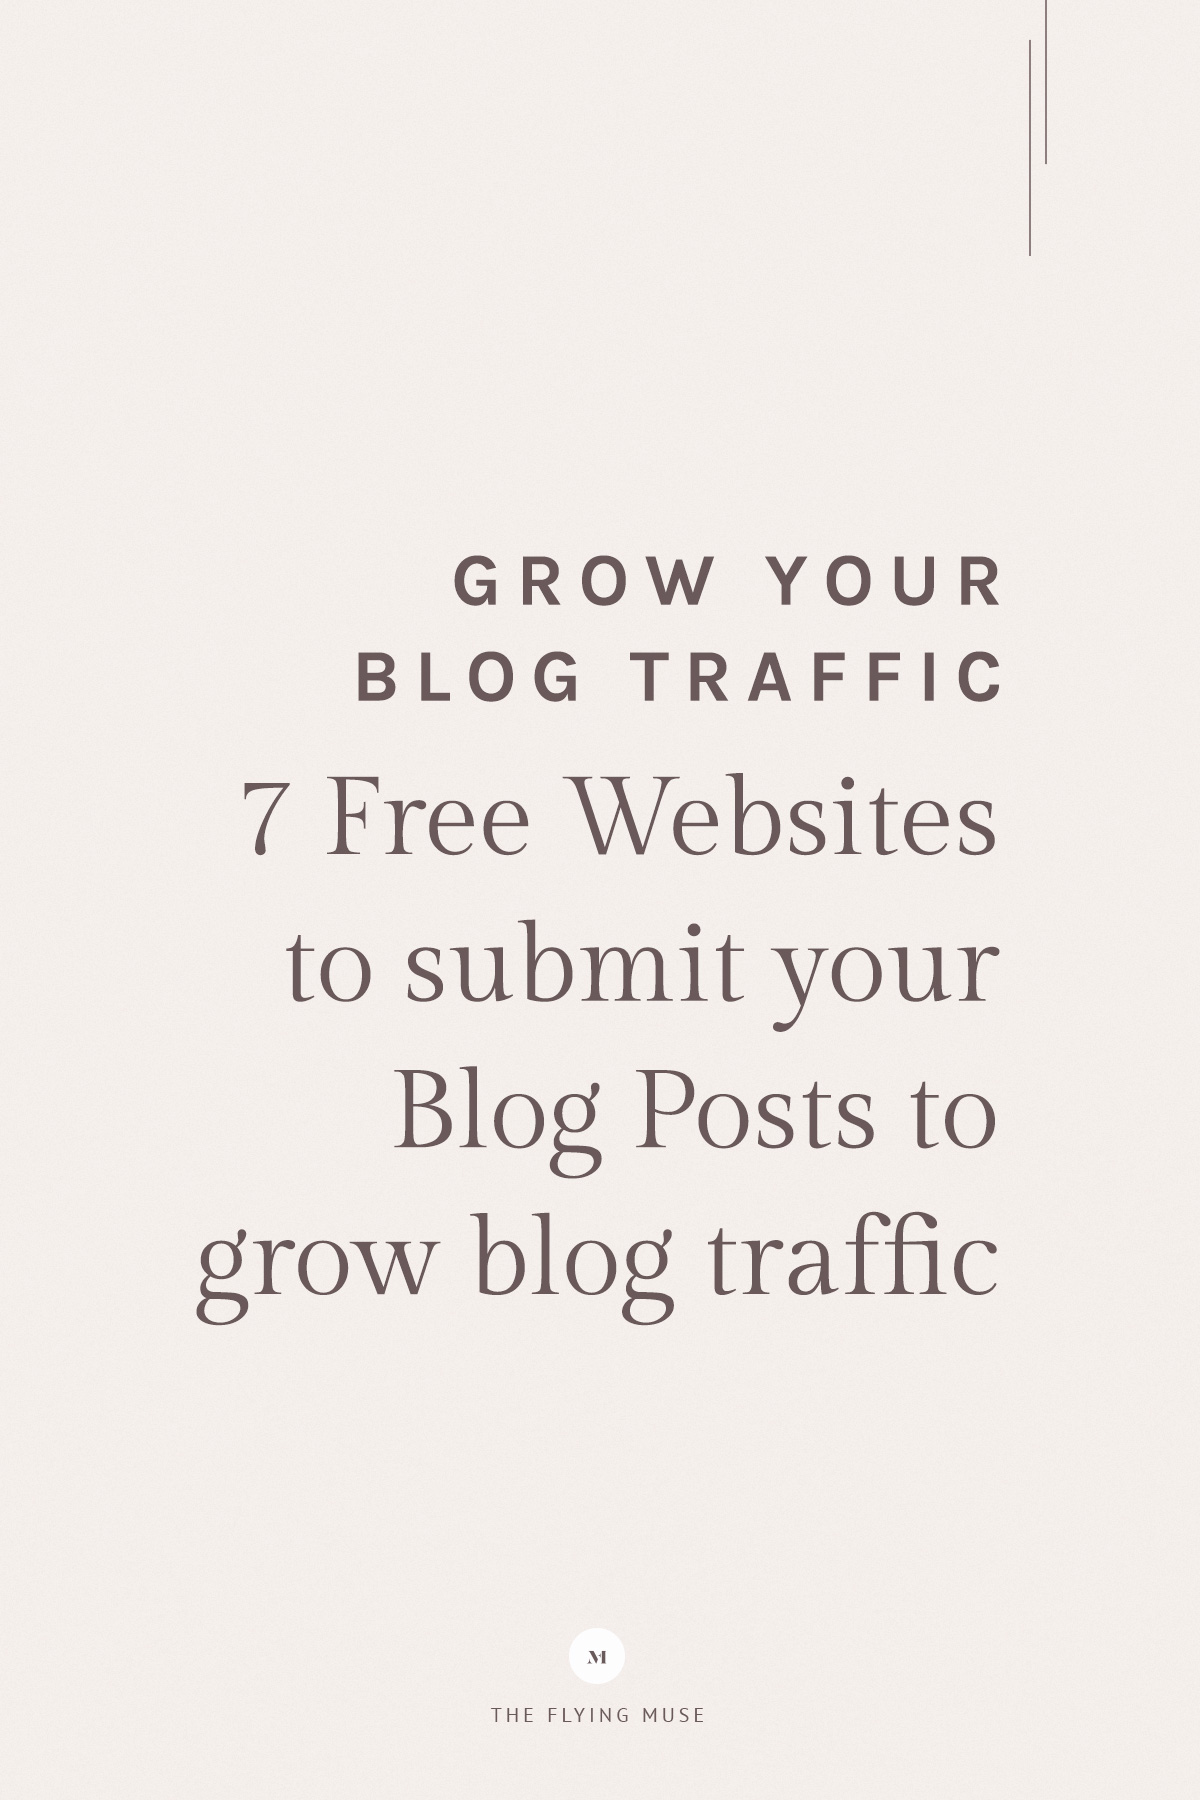 Grow Your Blog Traffic - Free Websites to Submit Blog Posts to